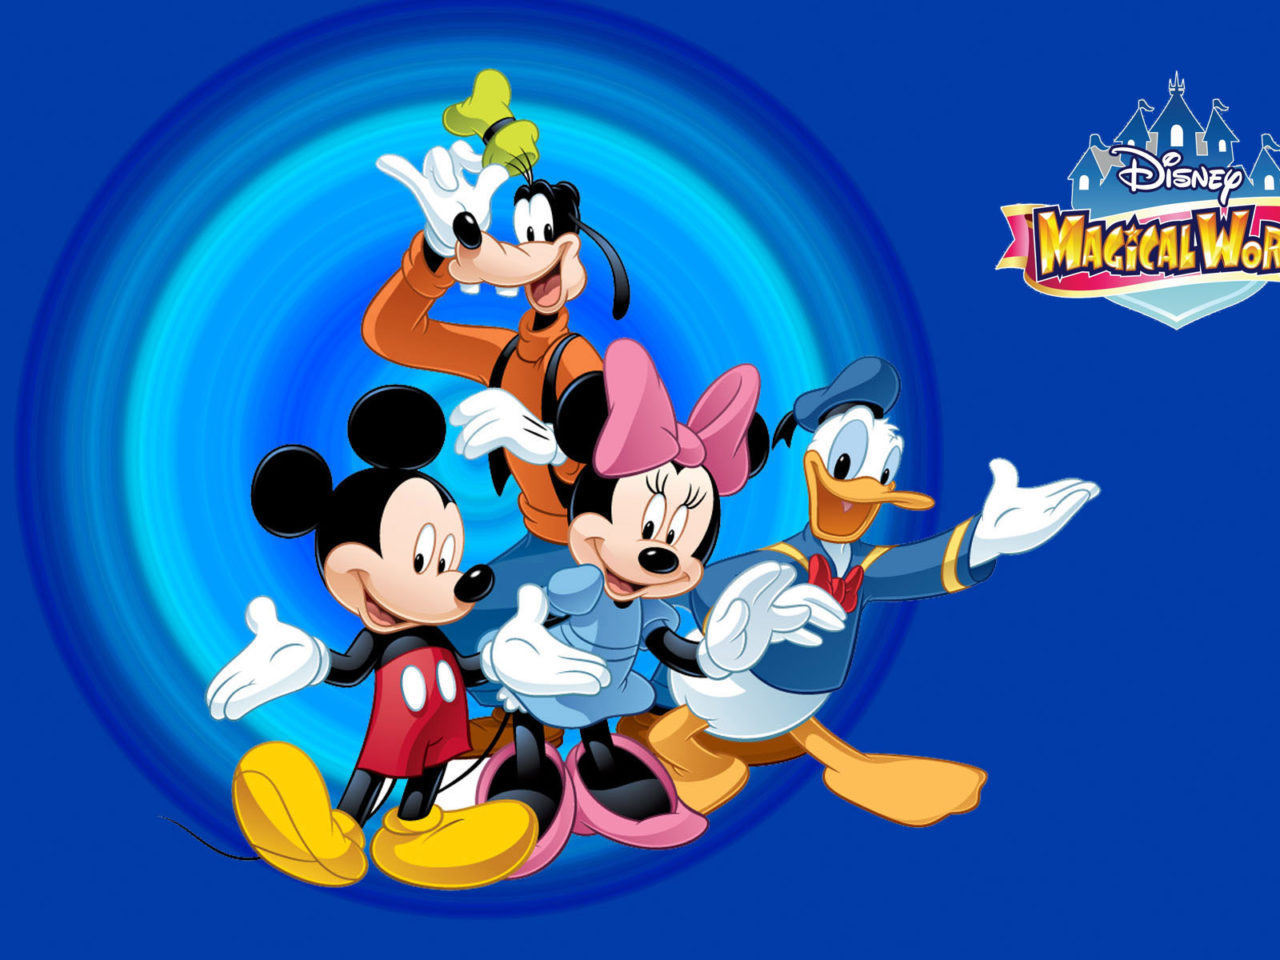 Cute Baby Pc Wallpaper Disney Magical World Mickey Mouse Cartoon Hd Wallpaper